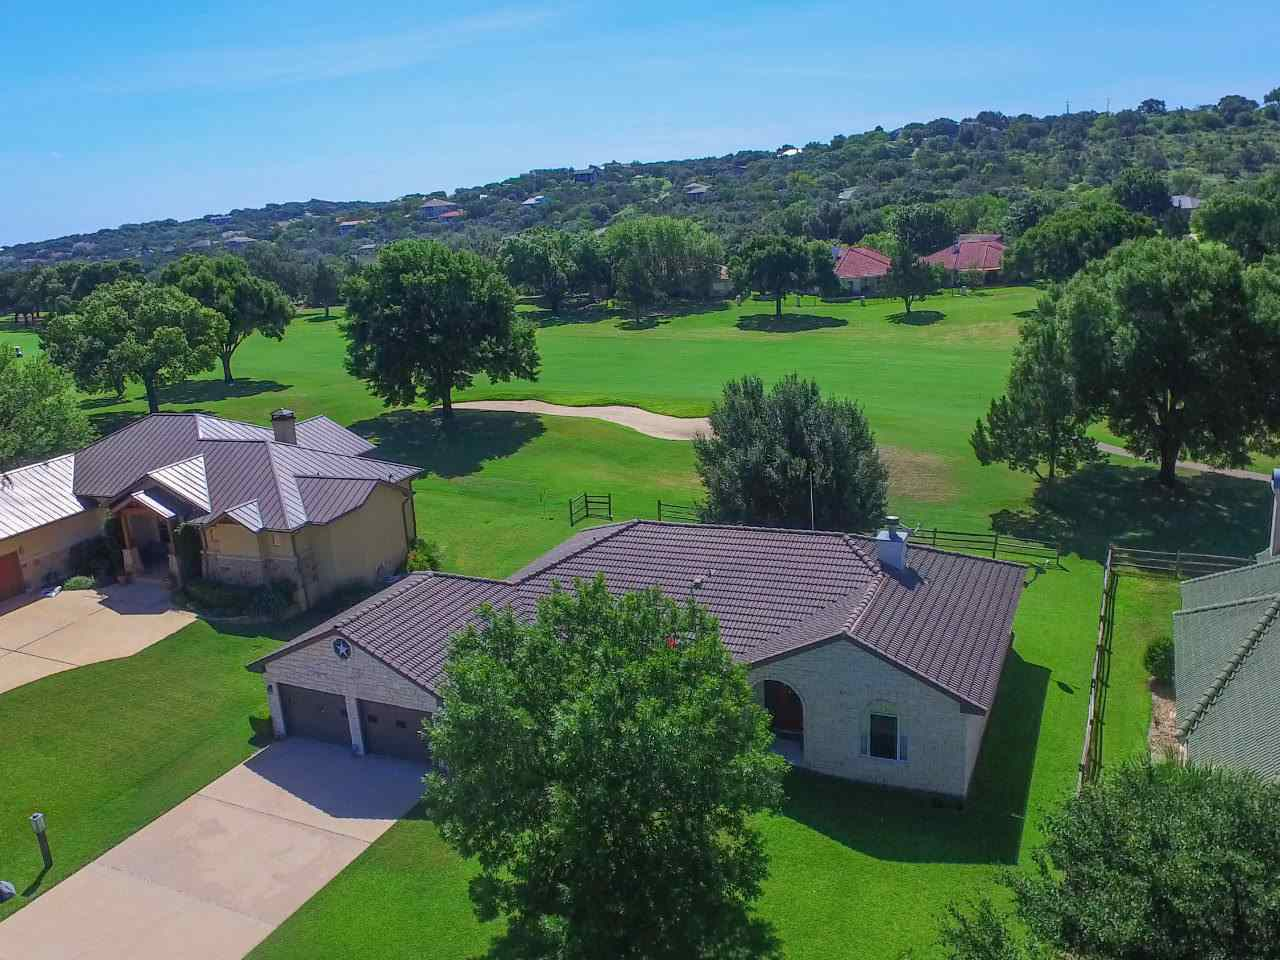 Single Family Home for Sale at 1407 Far West 1407 Far West Horseshoe Bay, Texas 78657 United States